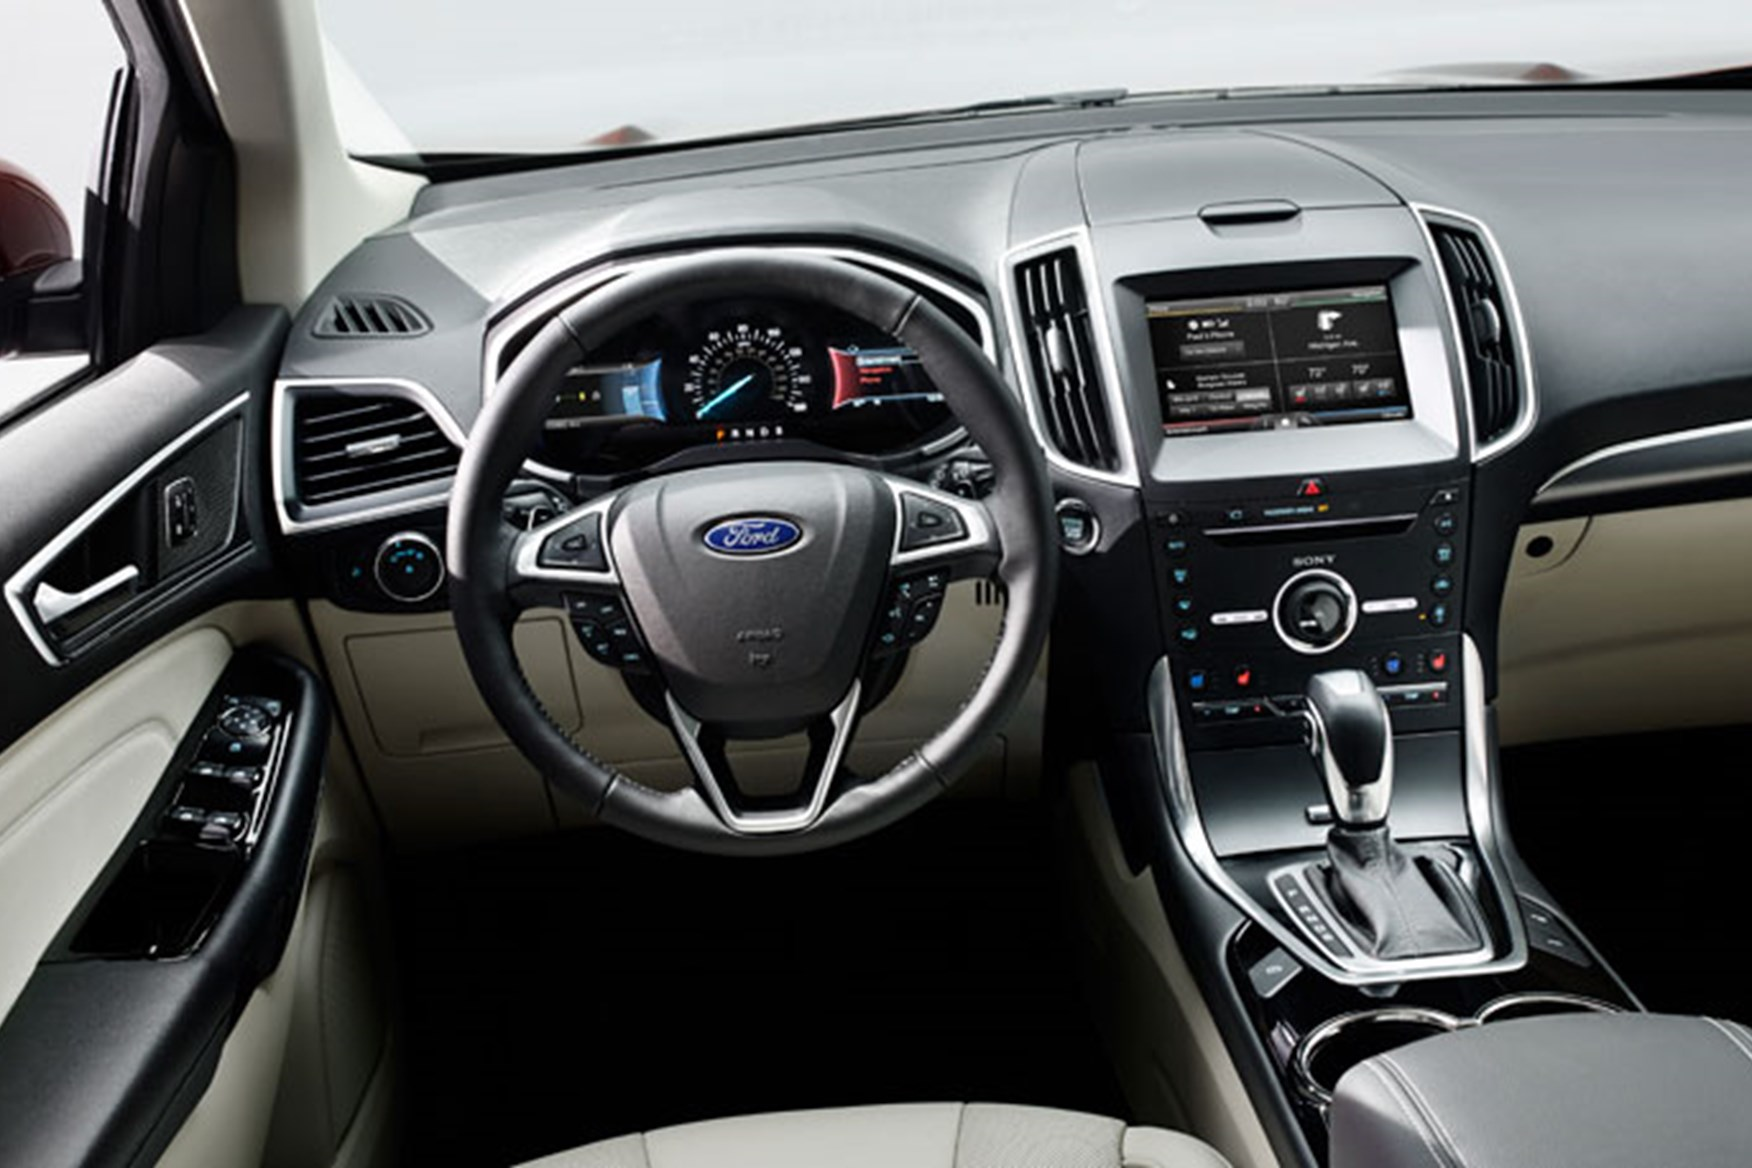 ... (2015) Lots Of Space Inside The Ford Edge, But Is The Quality A Match  For Audi?